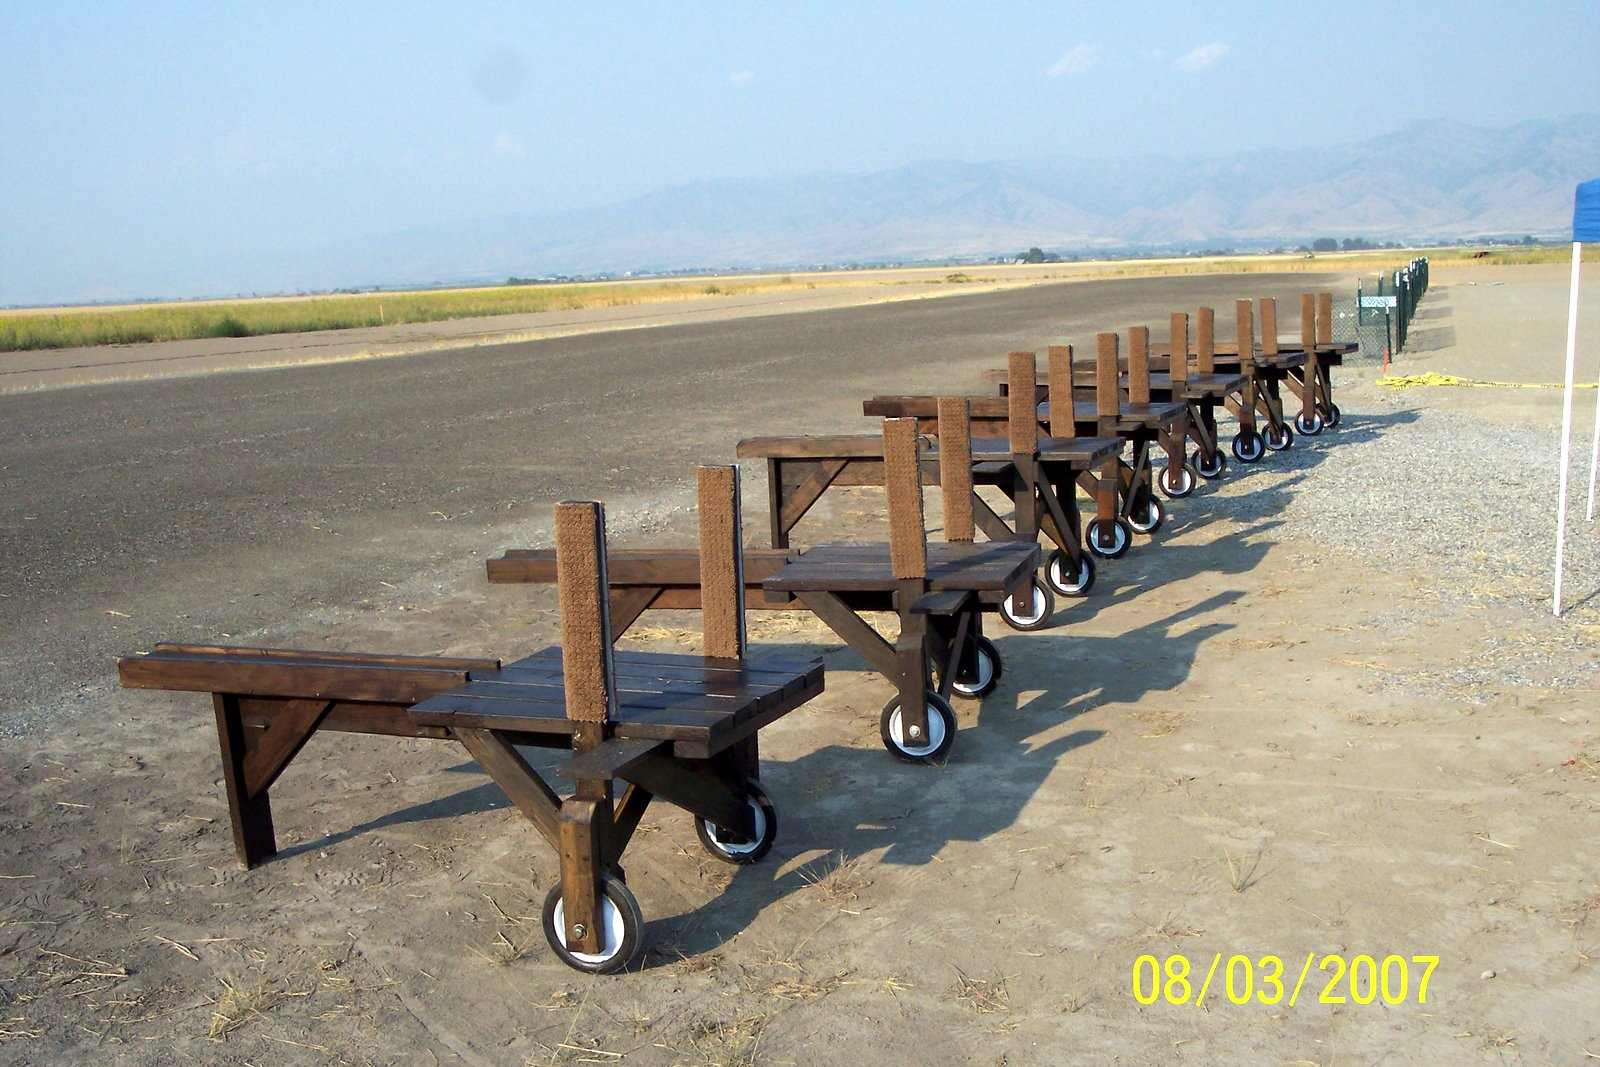 FIELD SAFETY BENCHES WERE DONATED AND CONSTRUCTED BY BOB ECKERT, GENE HAYCOCK, RICK JENSEN,RICHARD WILLIAMS, DICK NELSEN, DEWAYNE MERRITT AND JERRY COKELY.